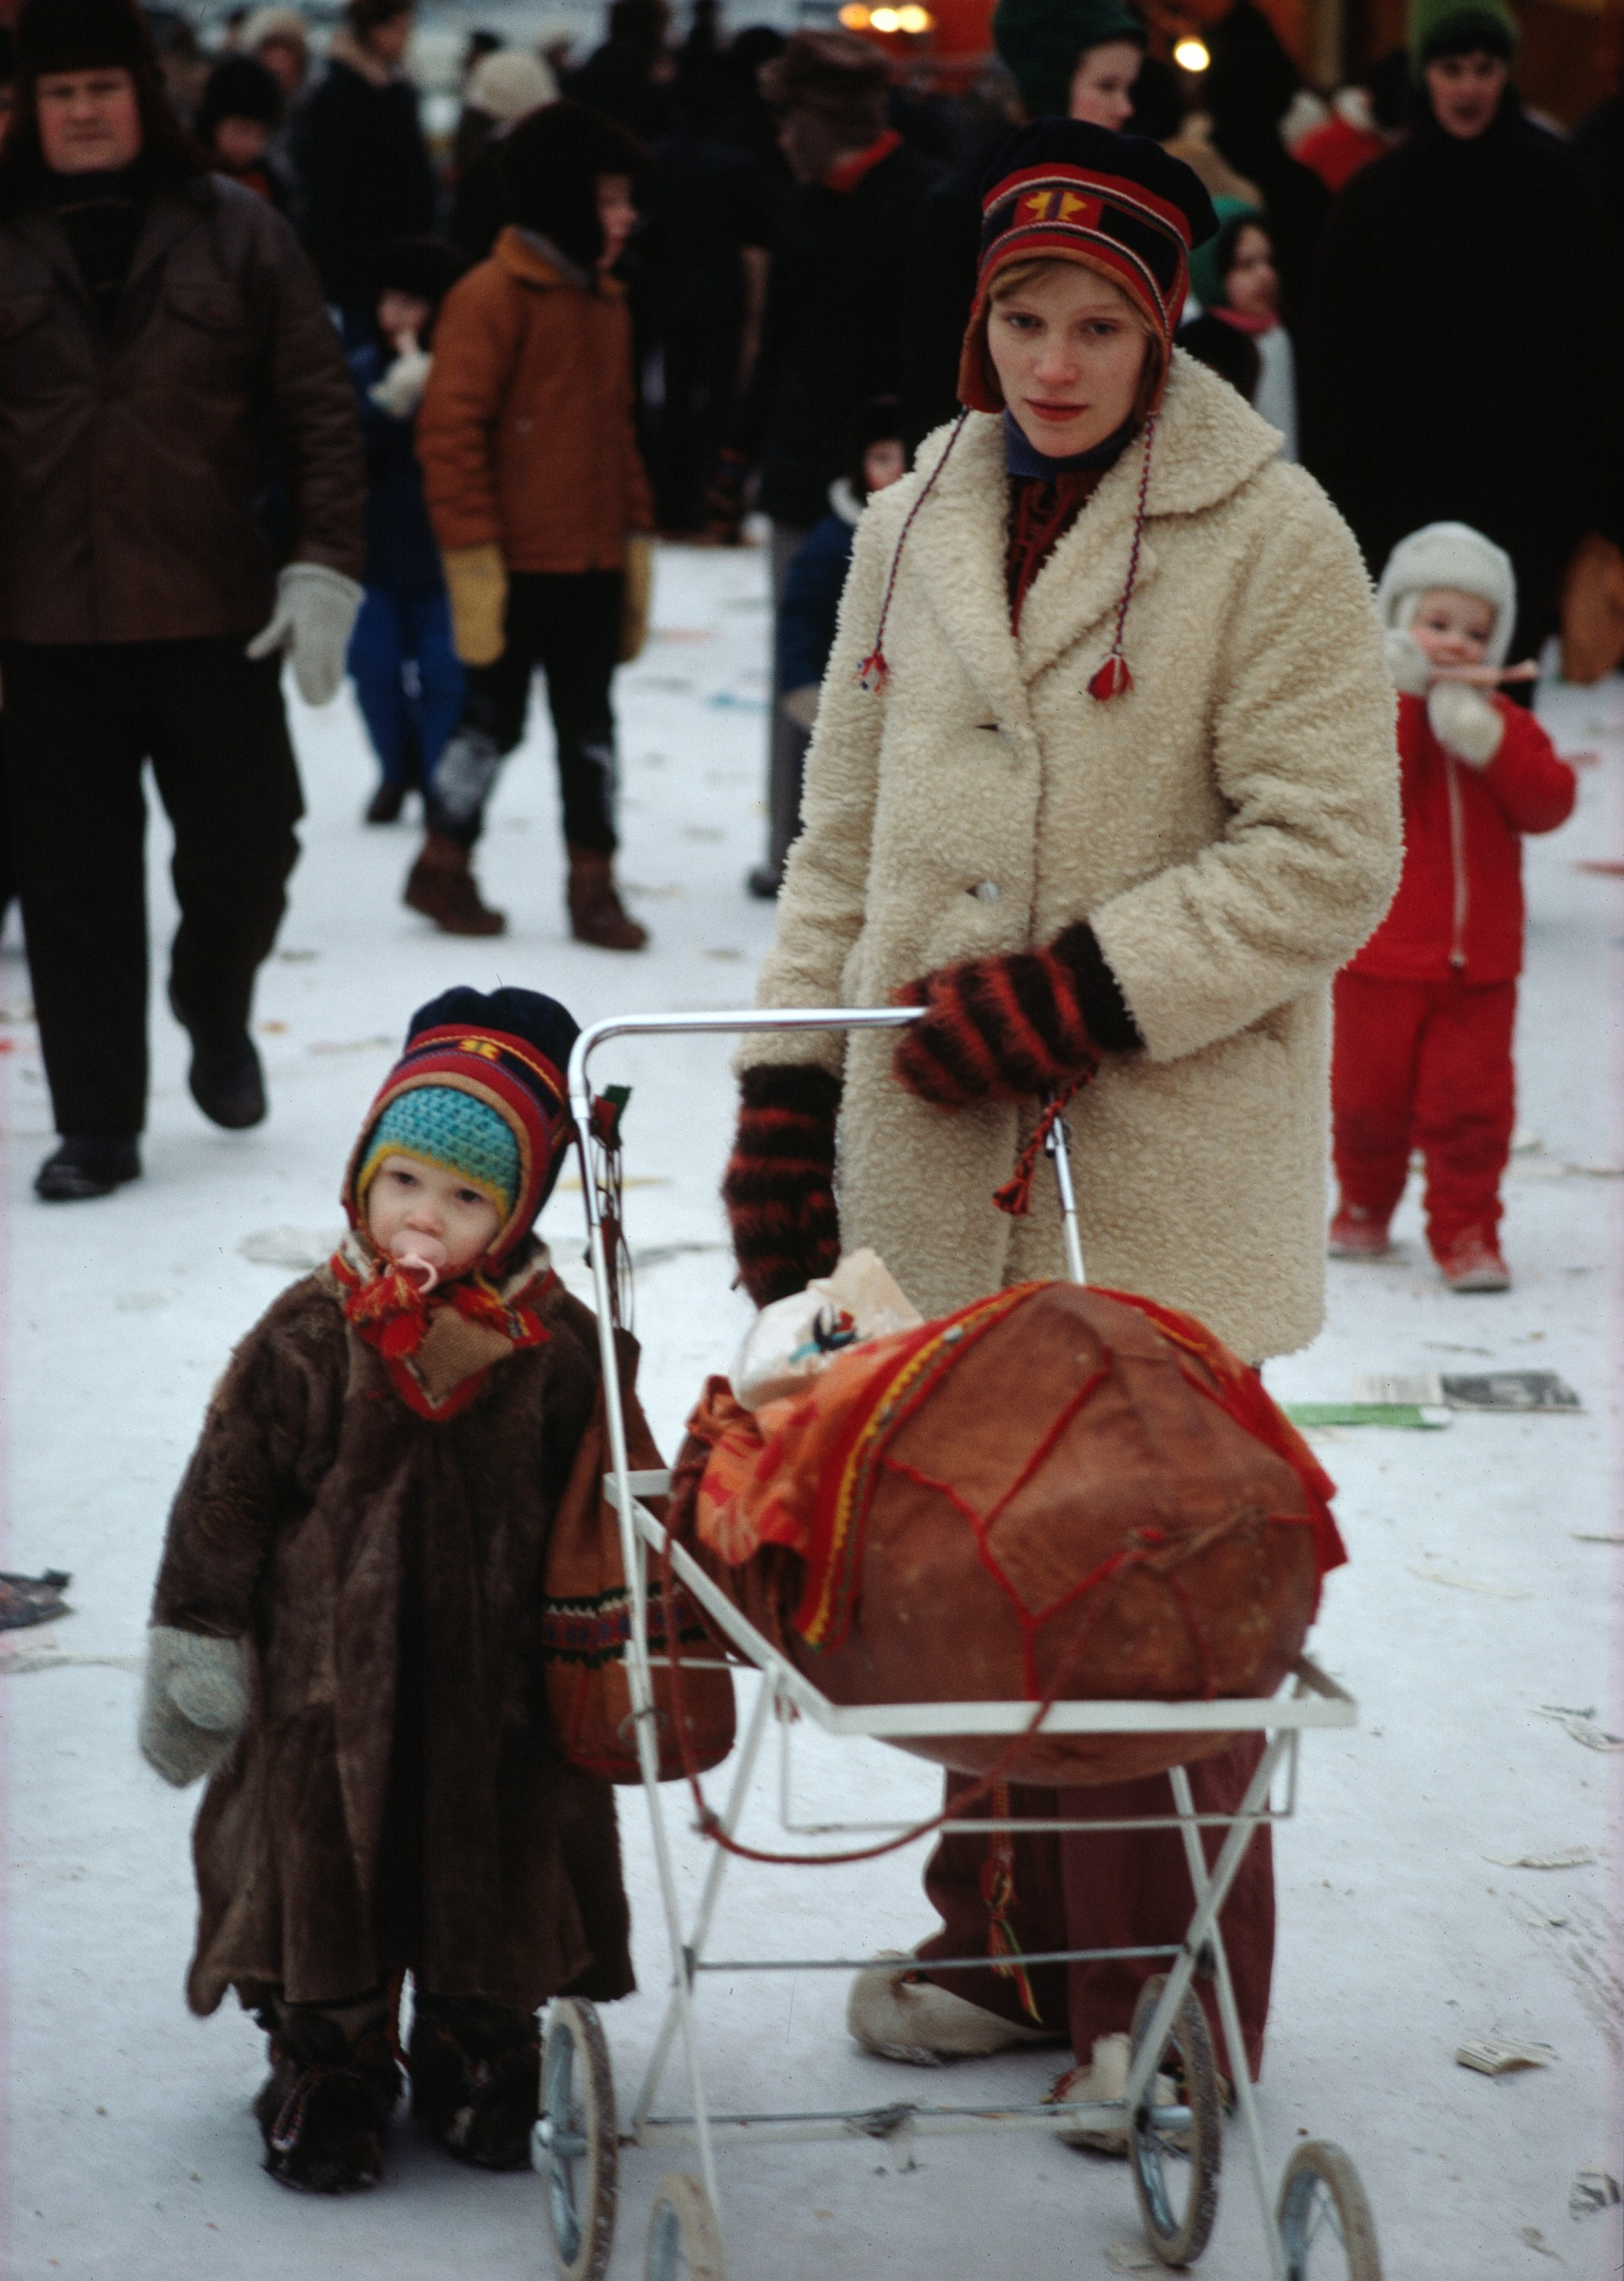 A woman and her child at Jokkmokk's winter market, 1972. Photo: Rolf Kjellström/ Nordiska museet